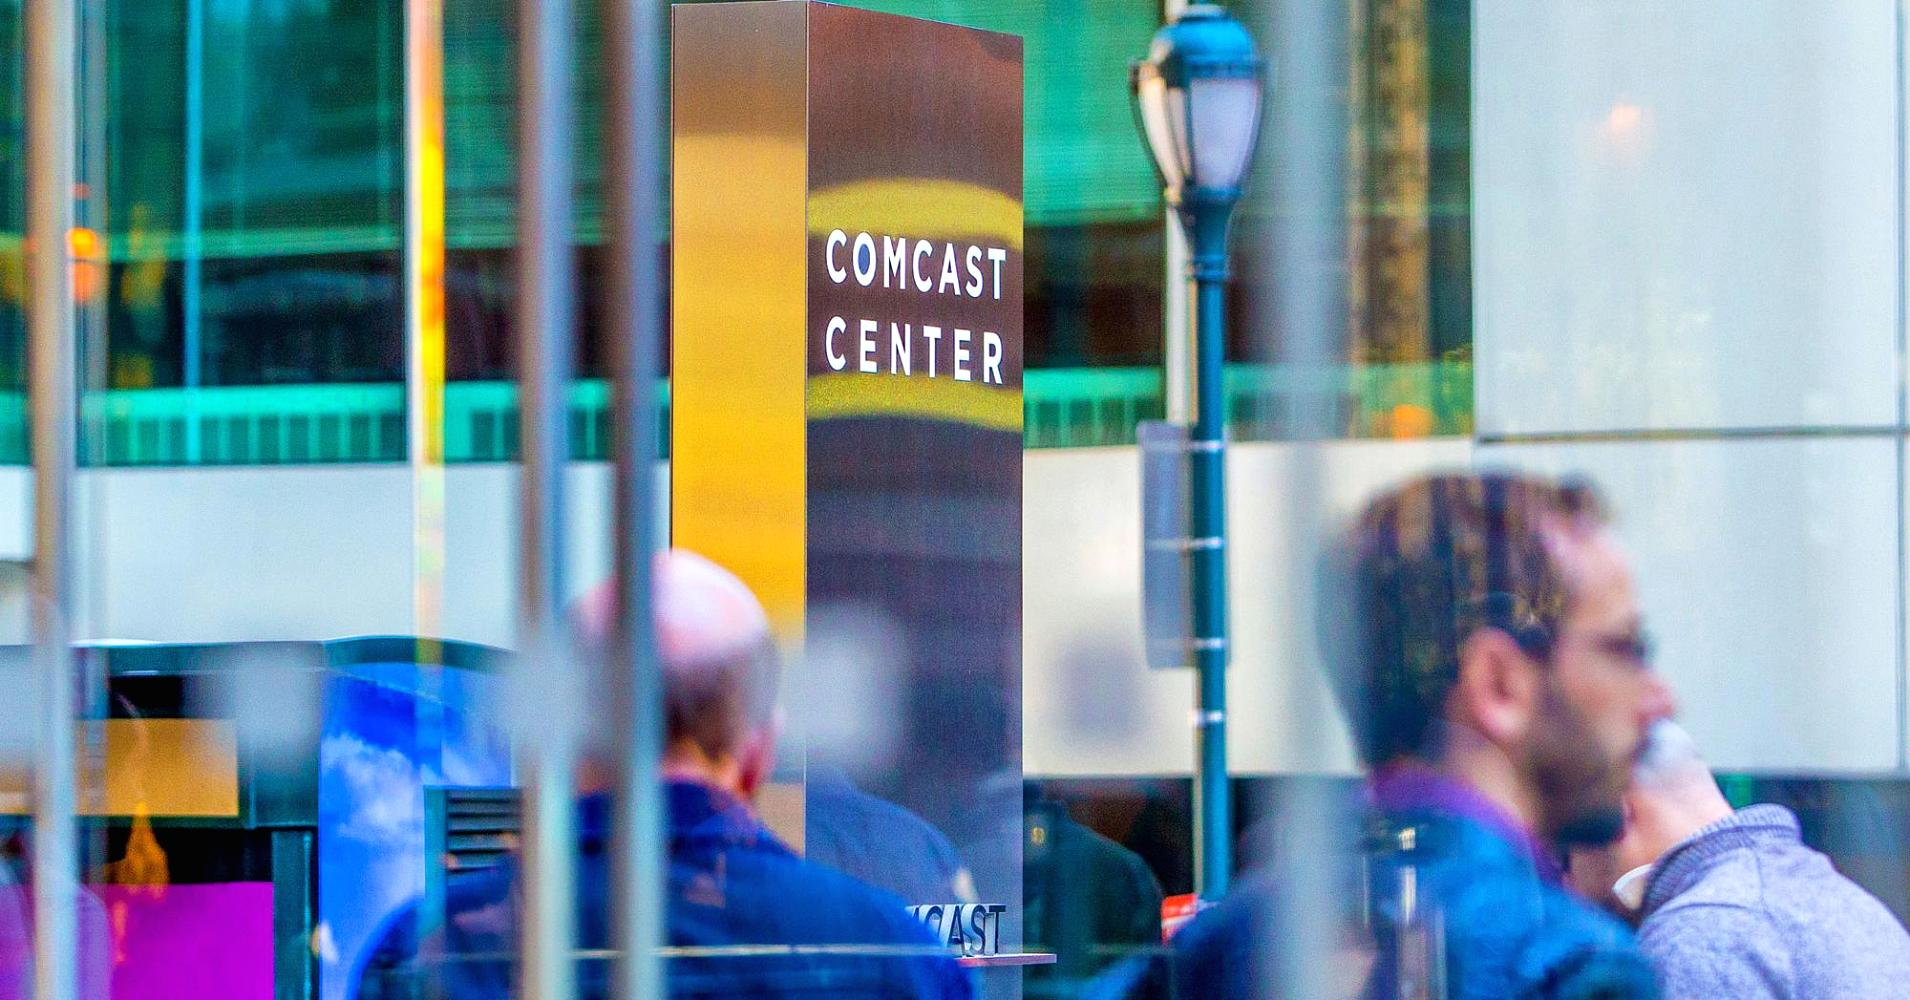 Comcast and Charter reach deal on joint wireless efforts